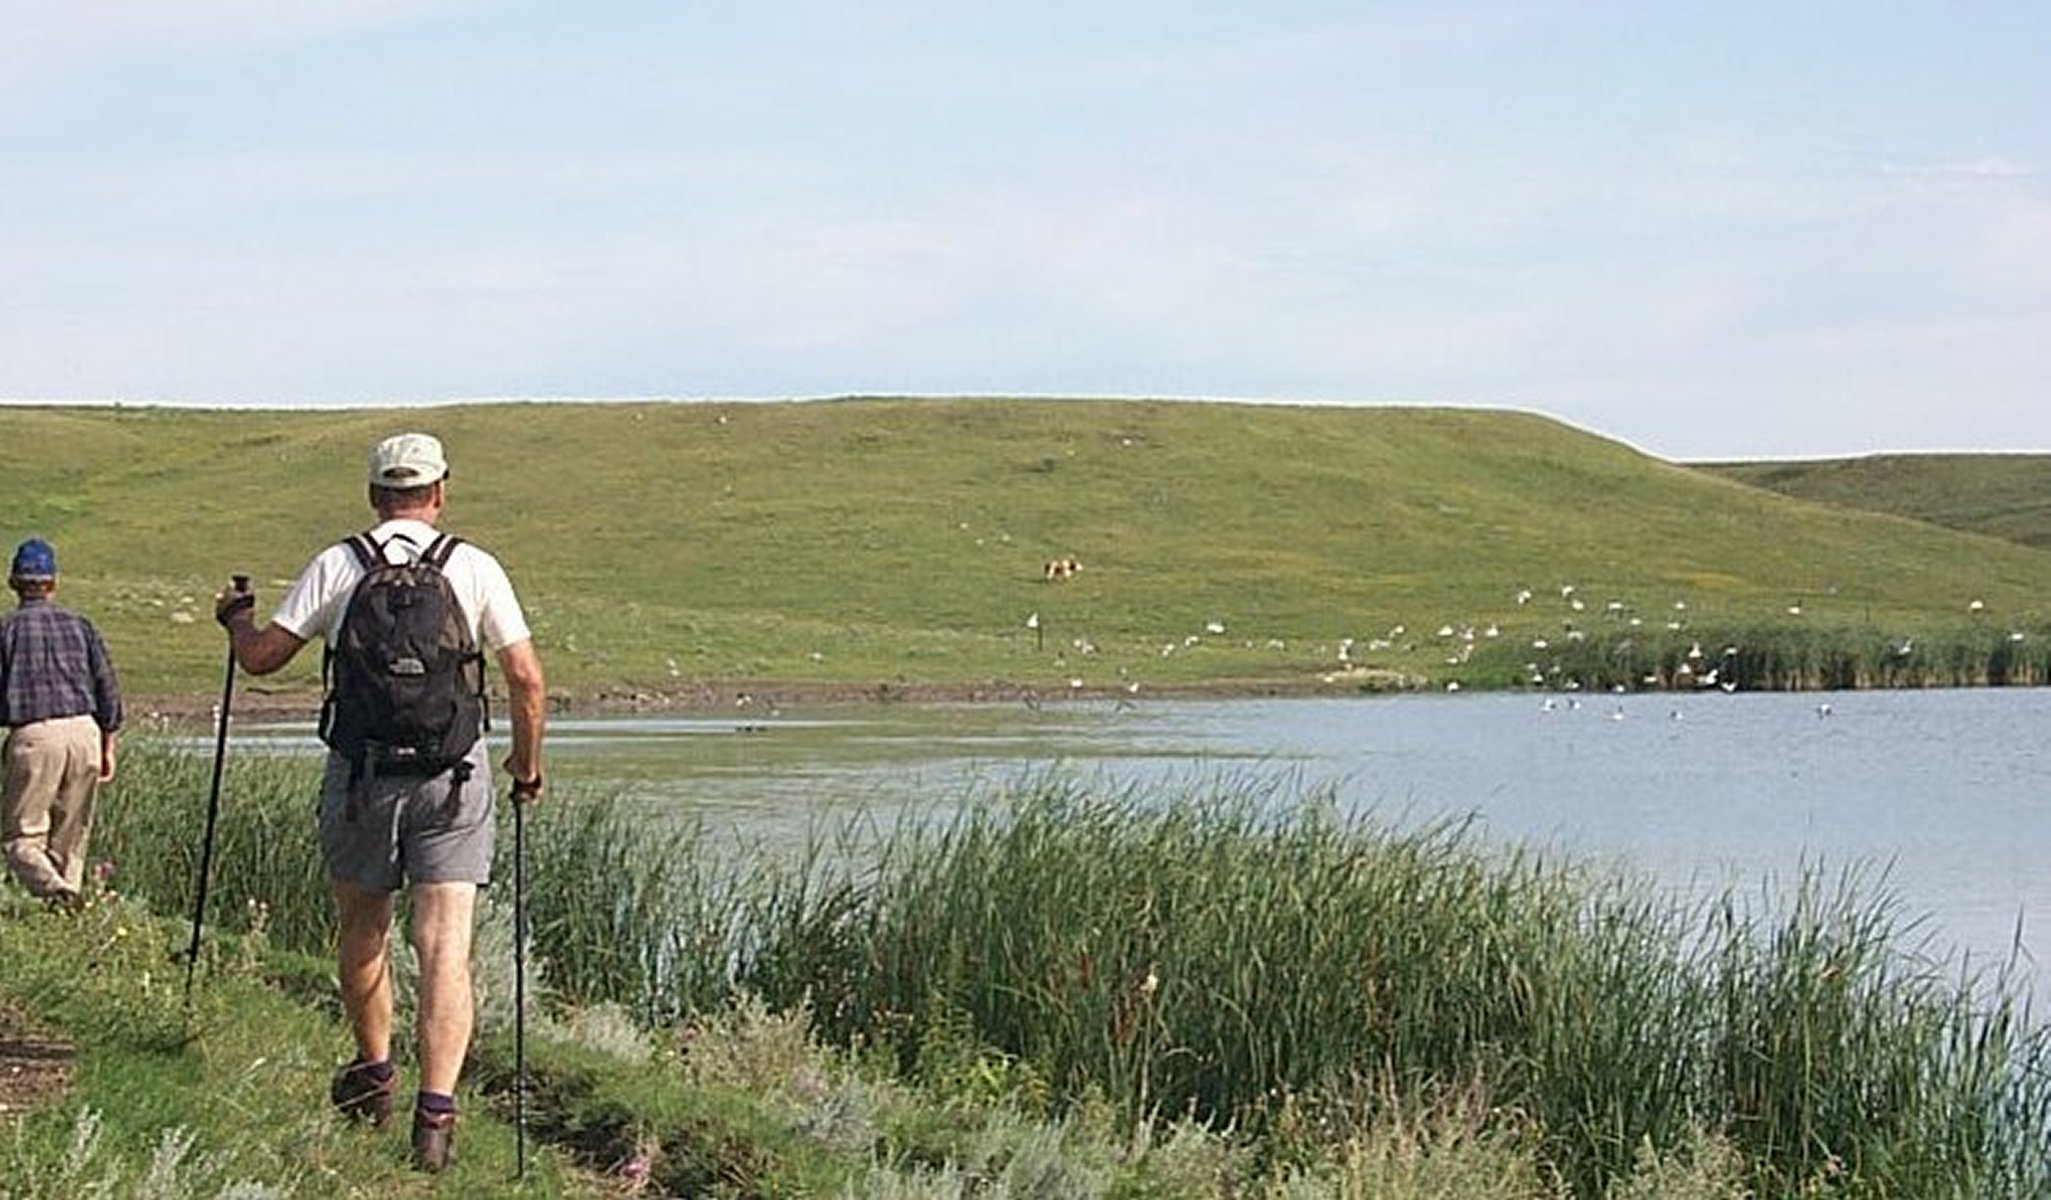 A Hiker along the shore of Lake Ashtabula, North Dakota